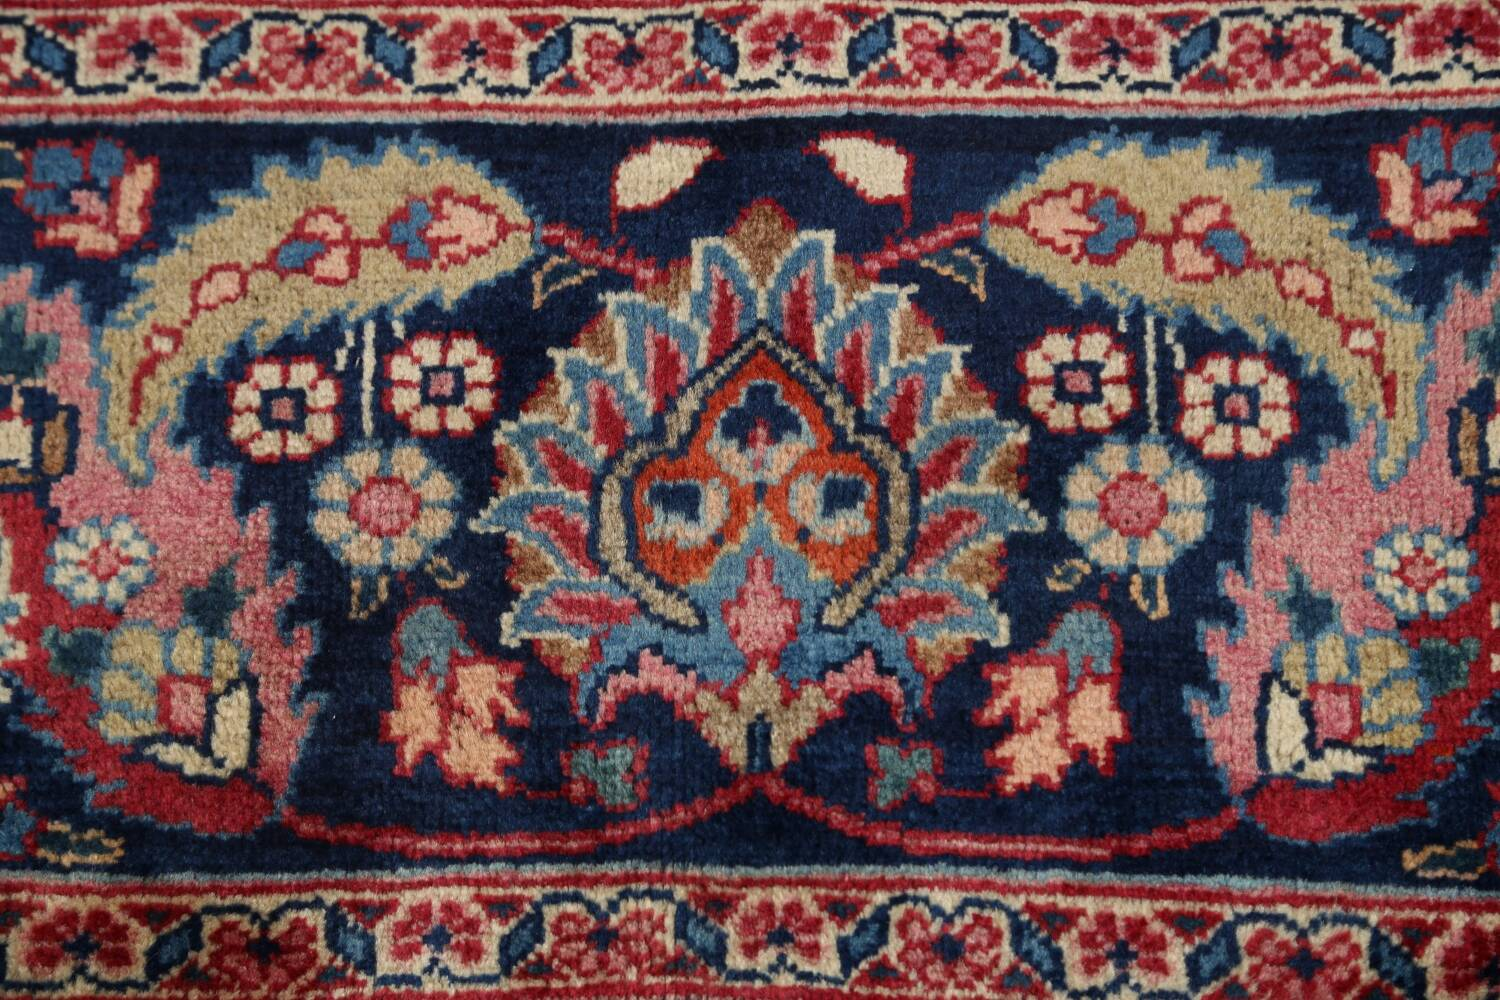 Antique Floral Vegetable Dye Mashad Persian Area Rug 10x13 image 9